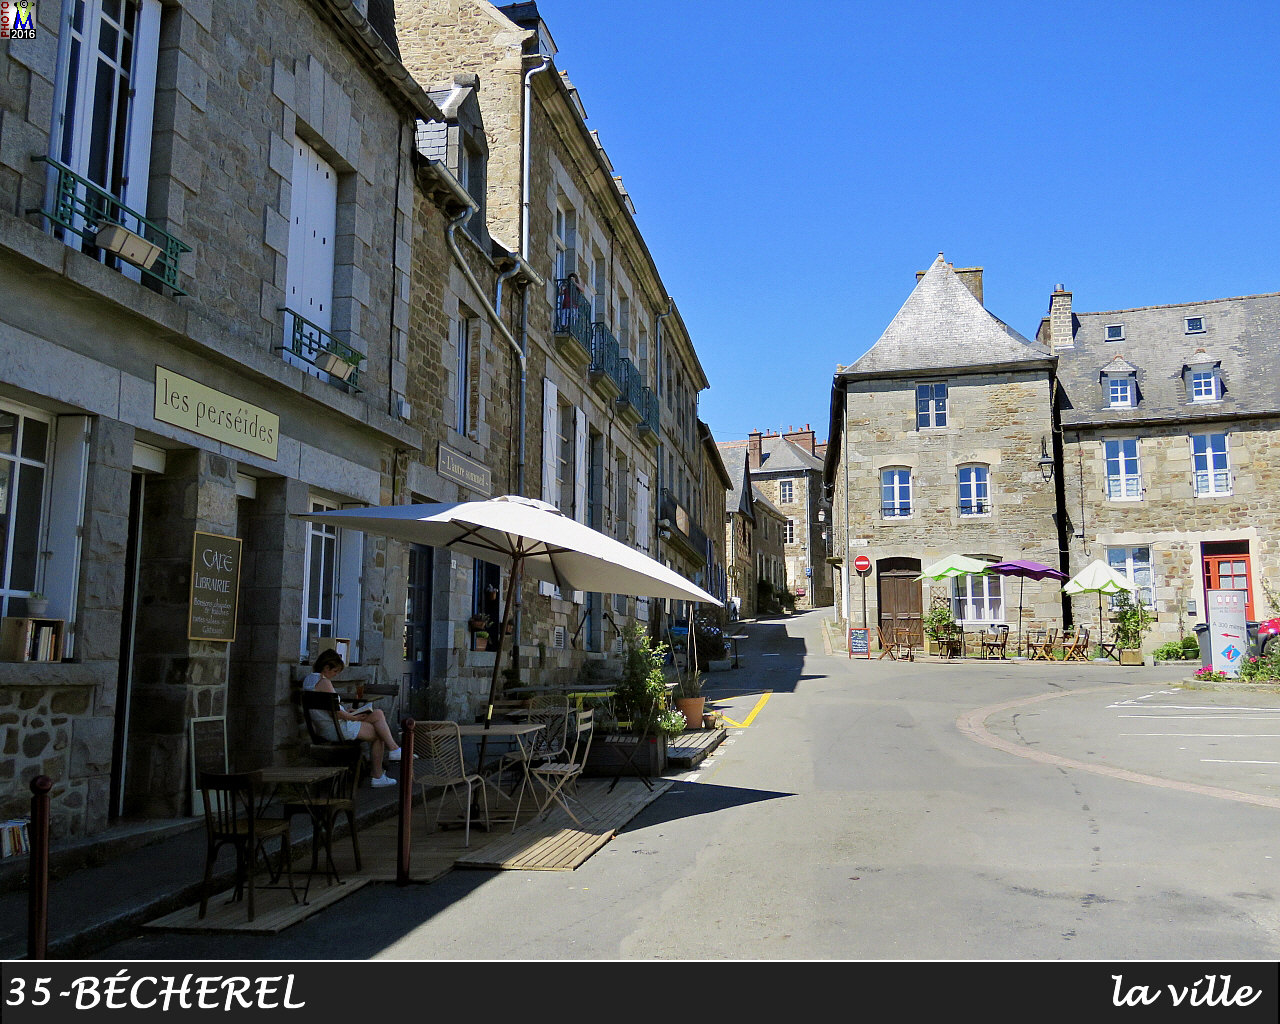 35BECHEREL_ville_116.jpg